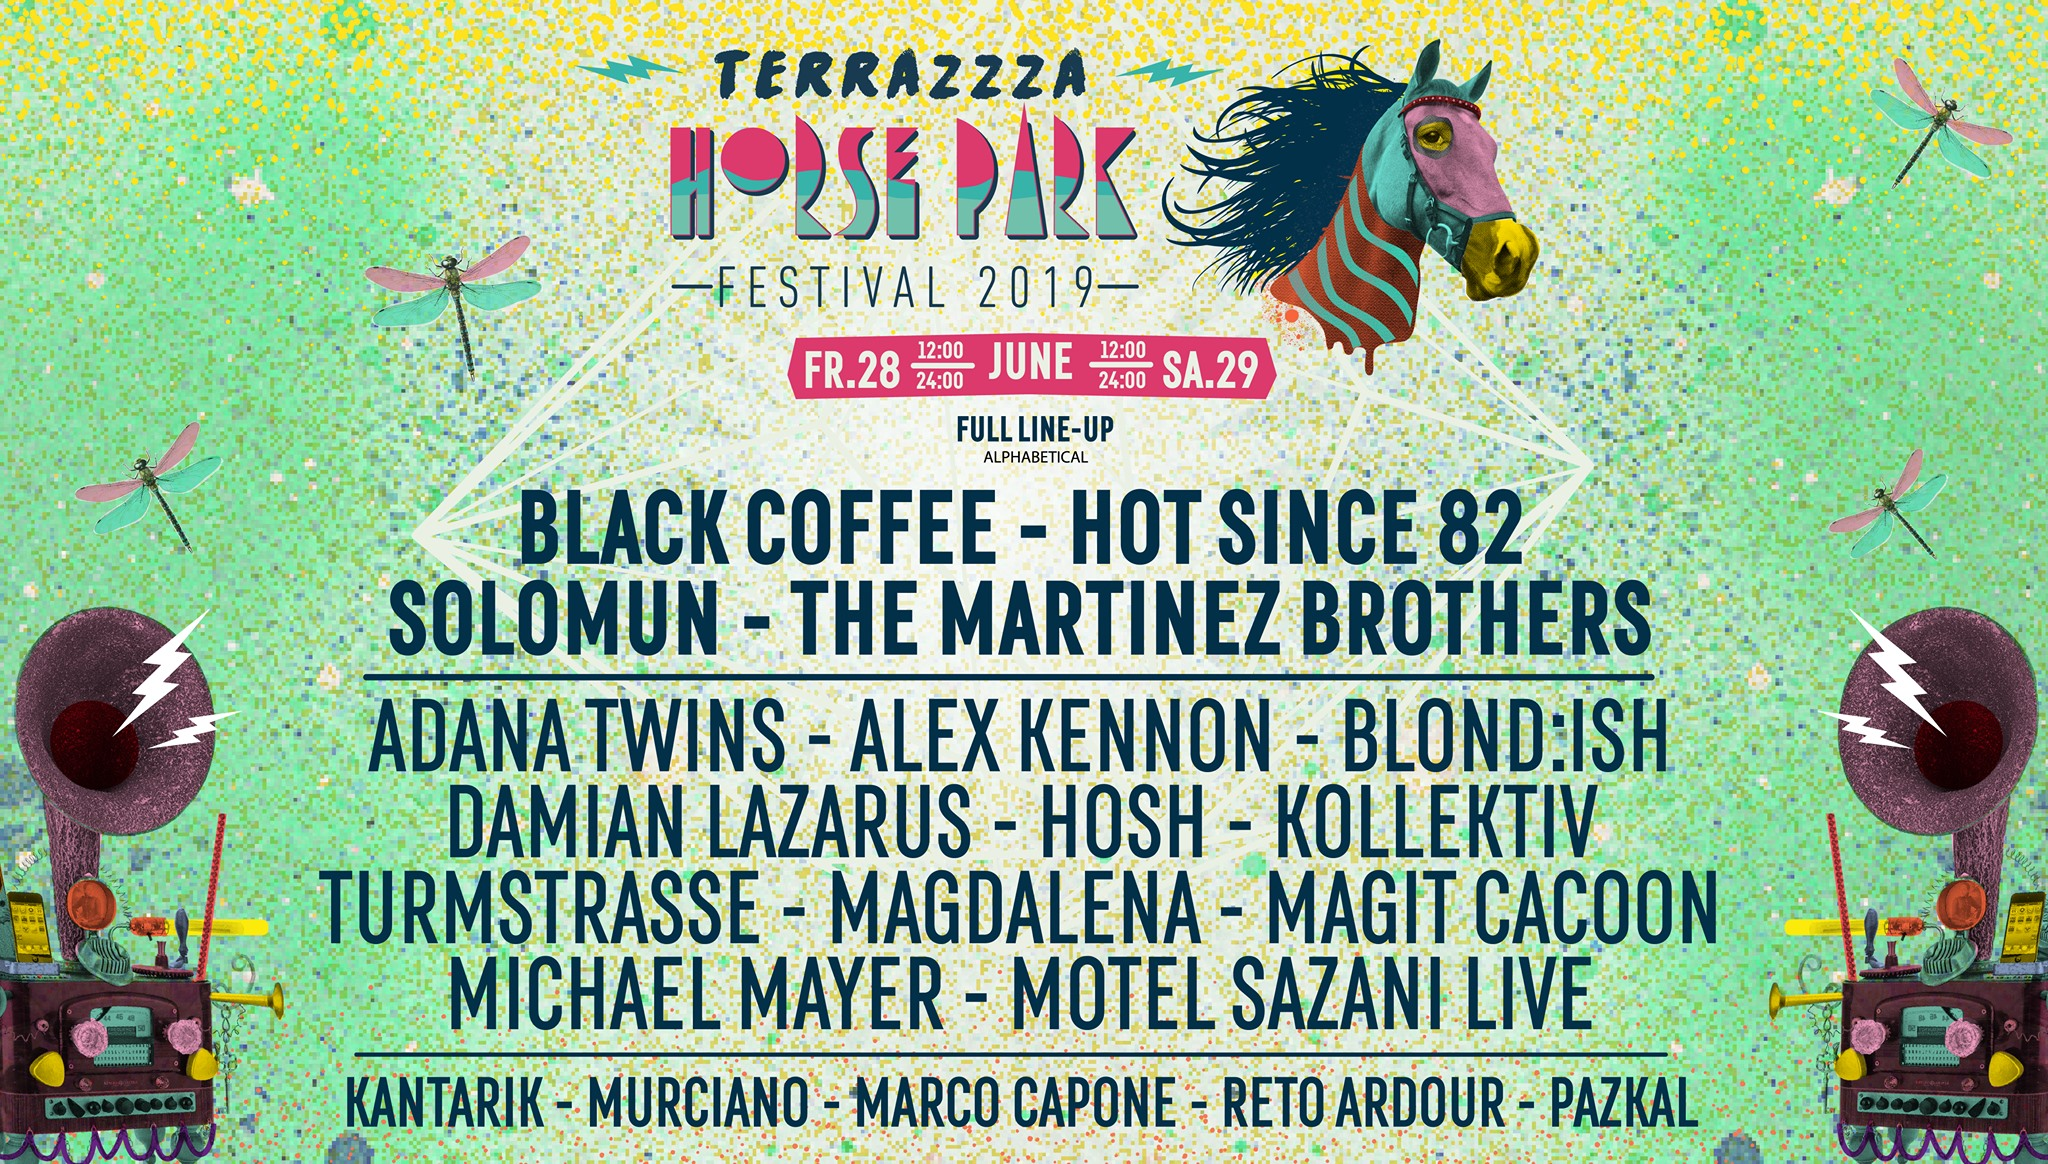 Full Lineup Revealed For Terrazzza Horse Park Festival